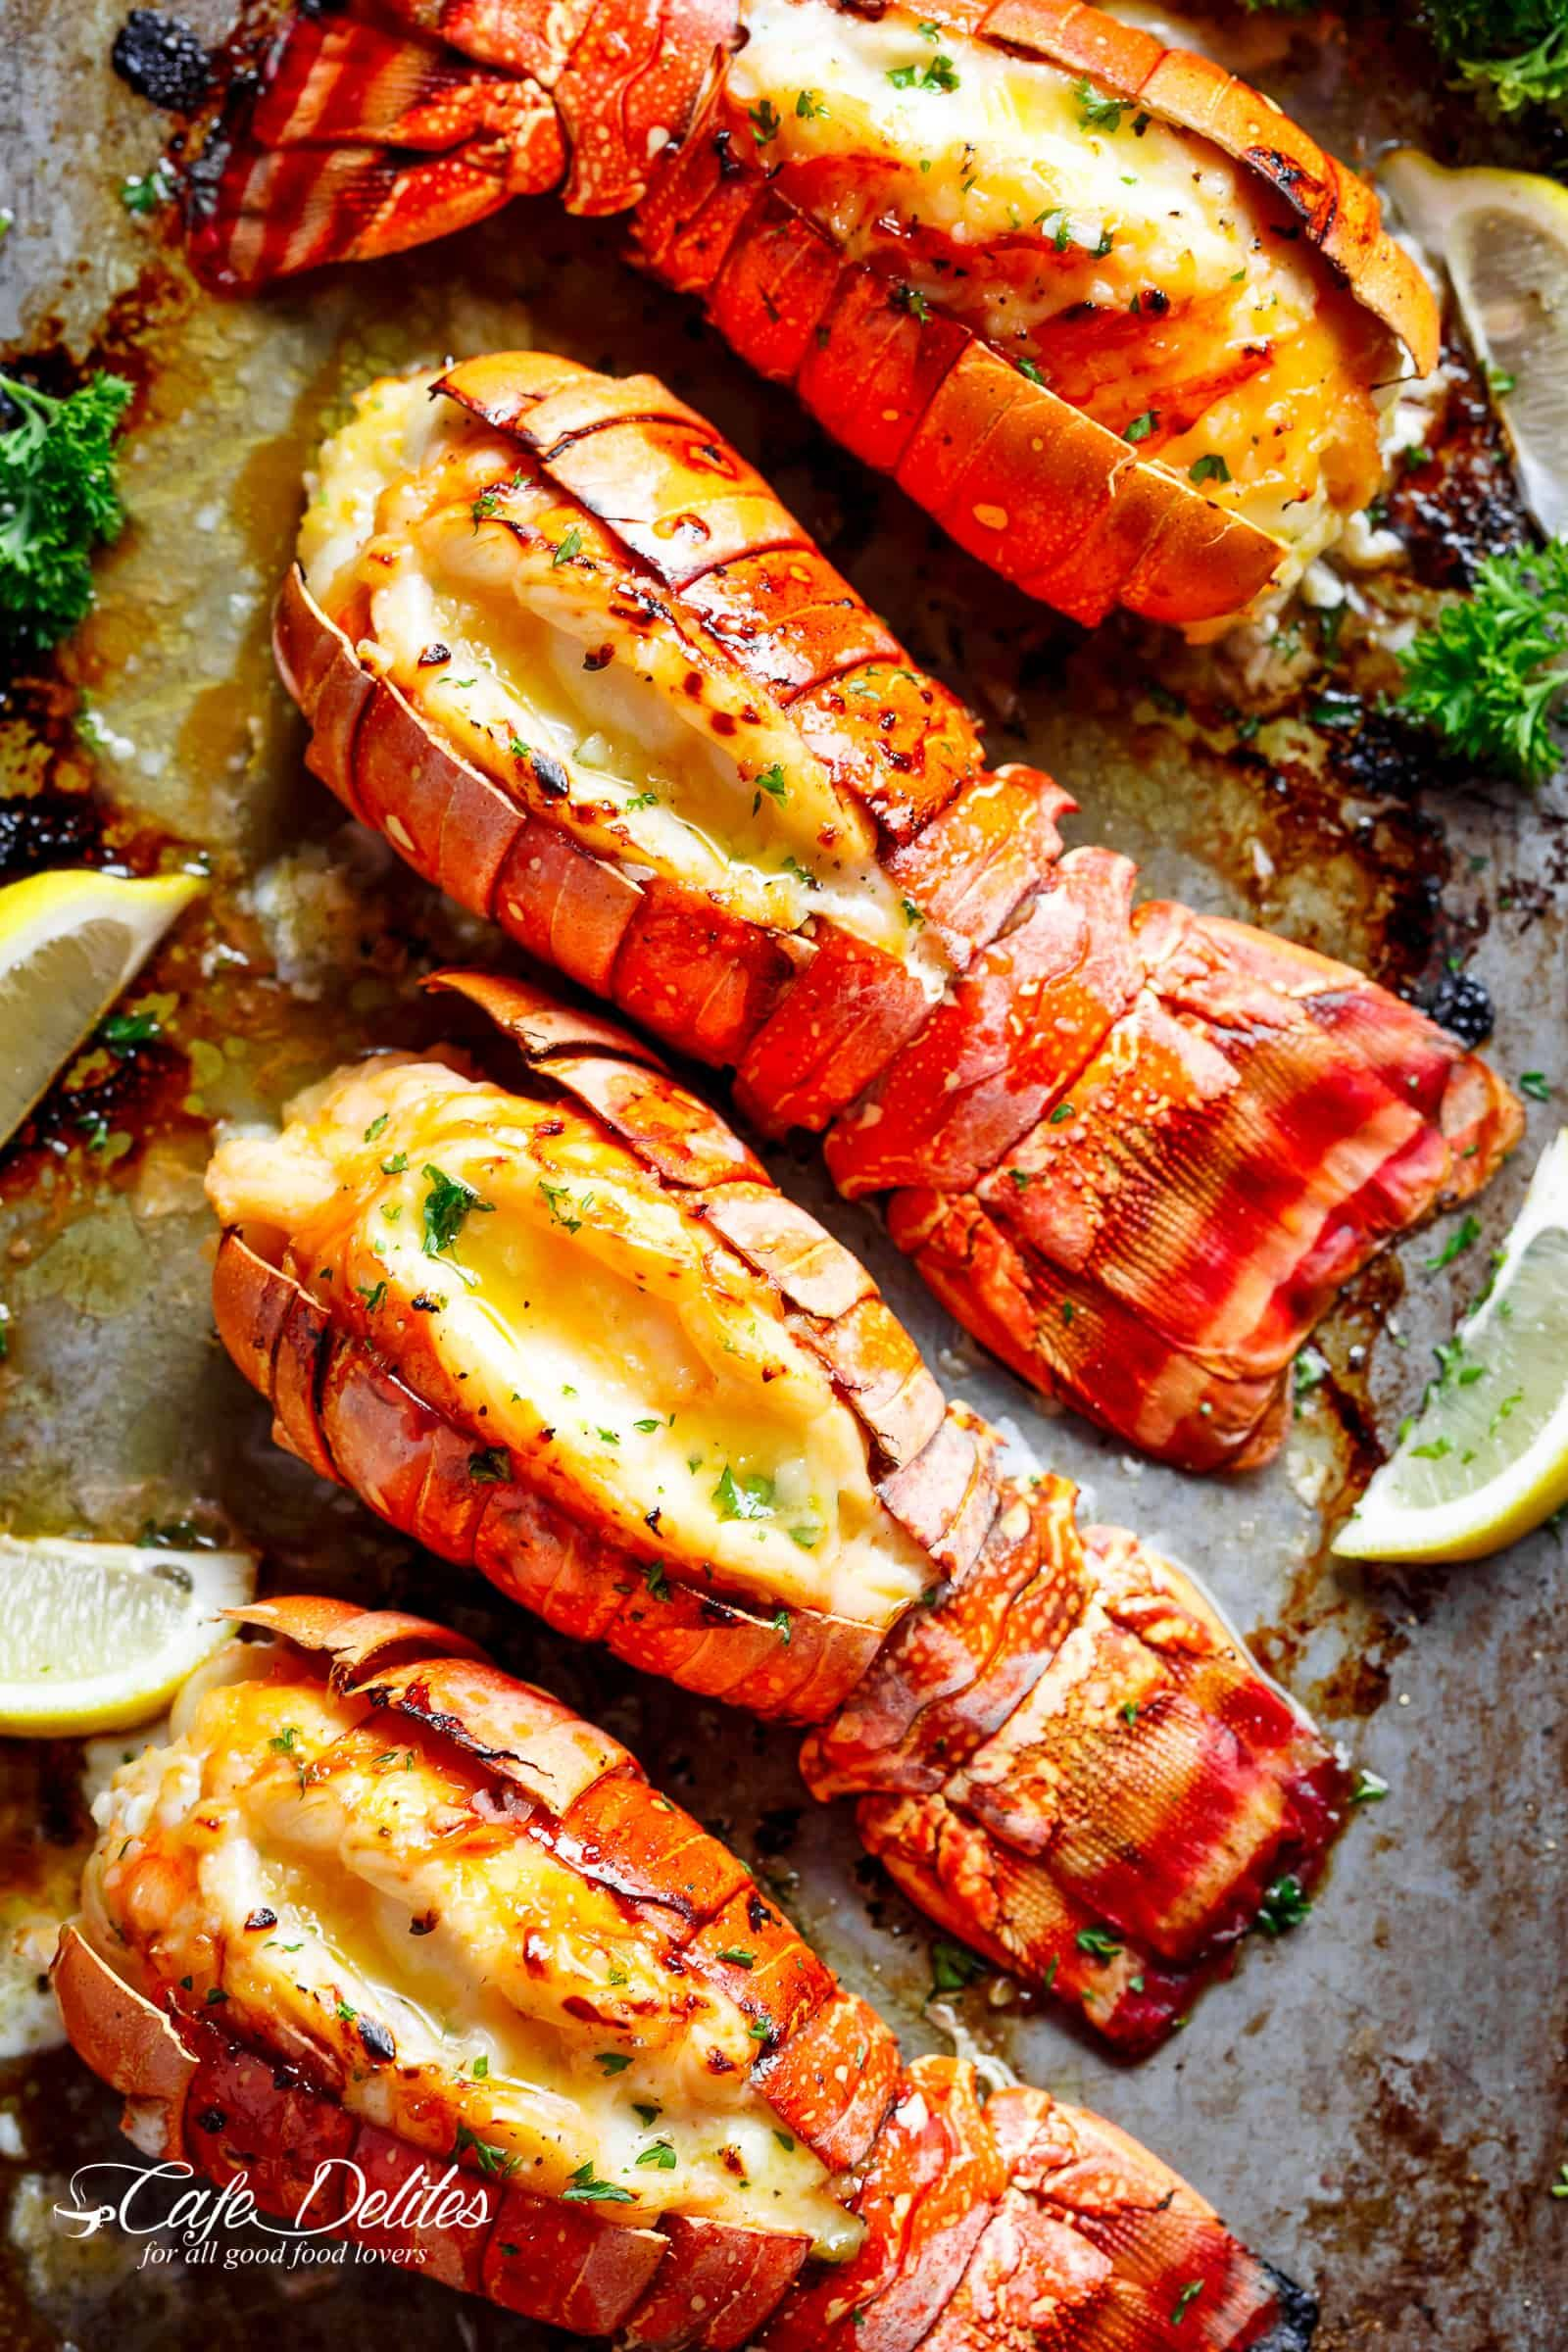 Broiled Lobster Tails With Honey Garlic Butter White Wine Sauce Is A Fancy Classy And Best Of Al Lobster Recipes Tail White Wine Sauce Recipes Lobster Recipes